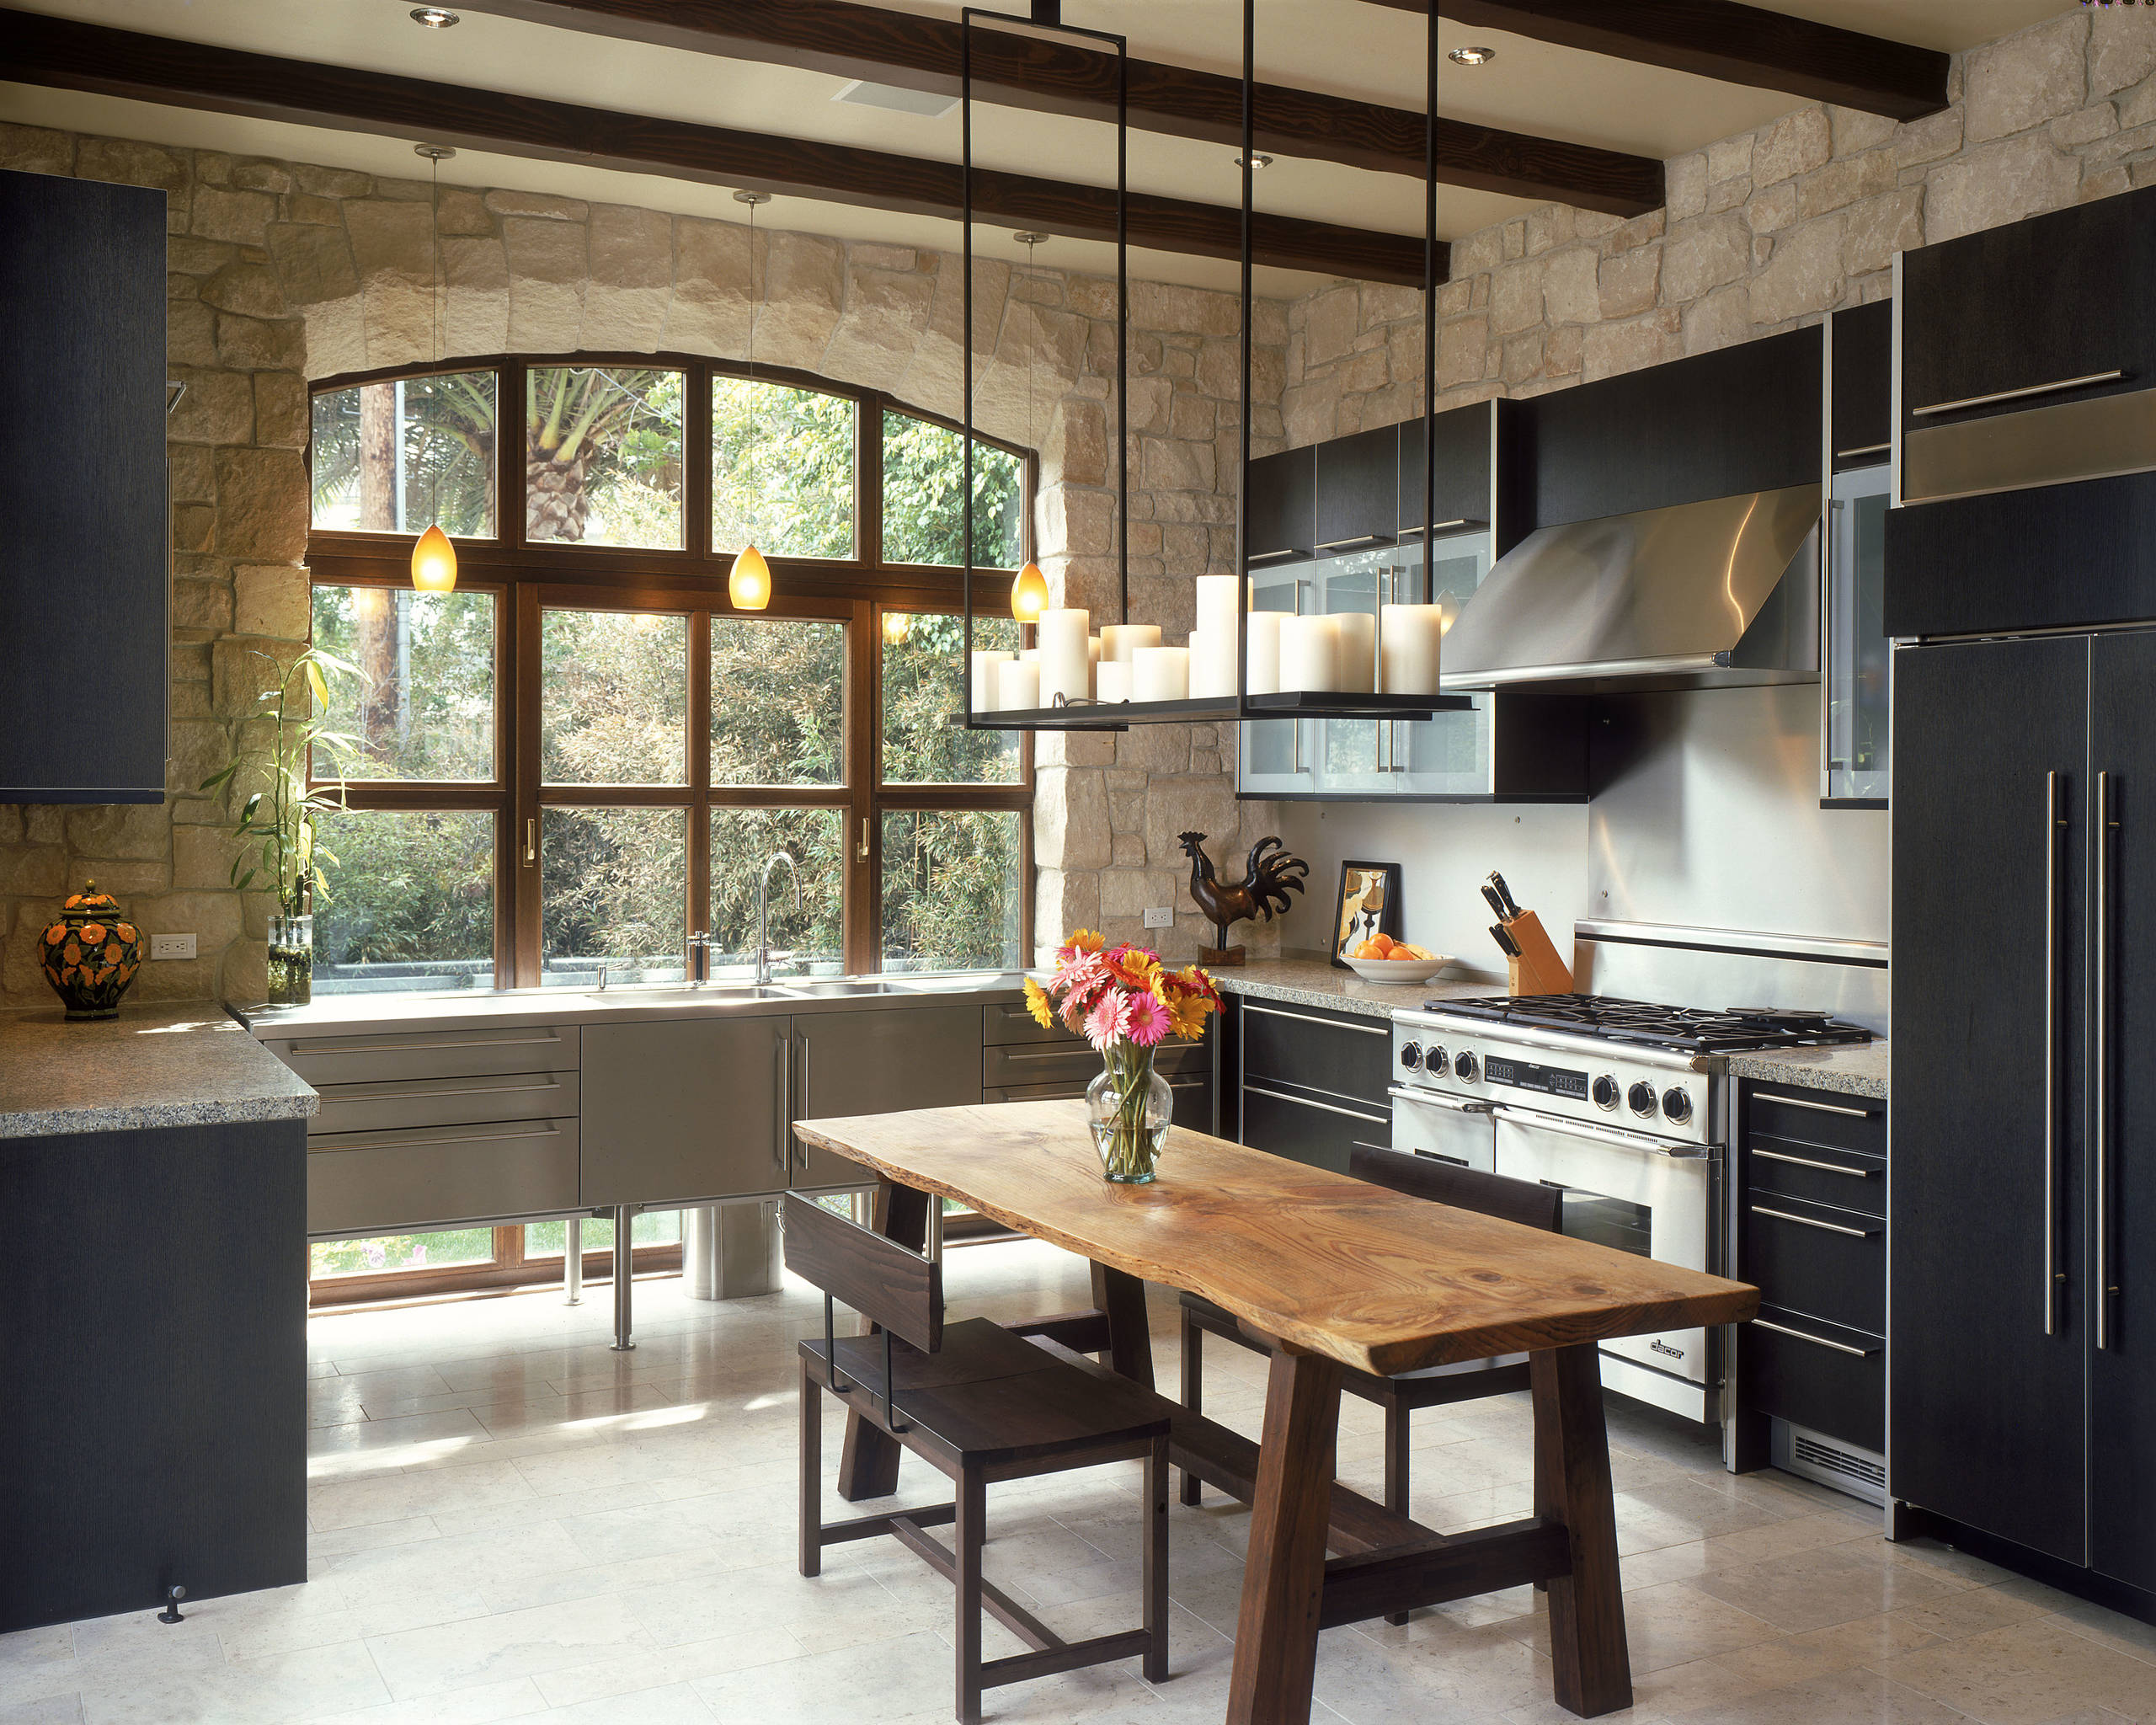 16 charming mediterranean kitchen designs that will How do you design a kitchen